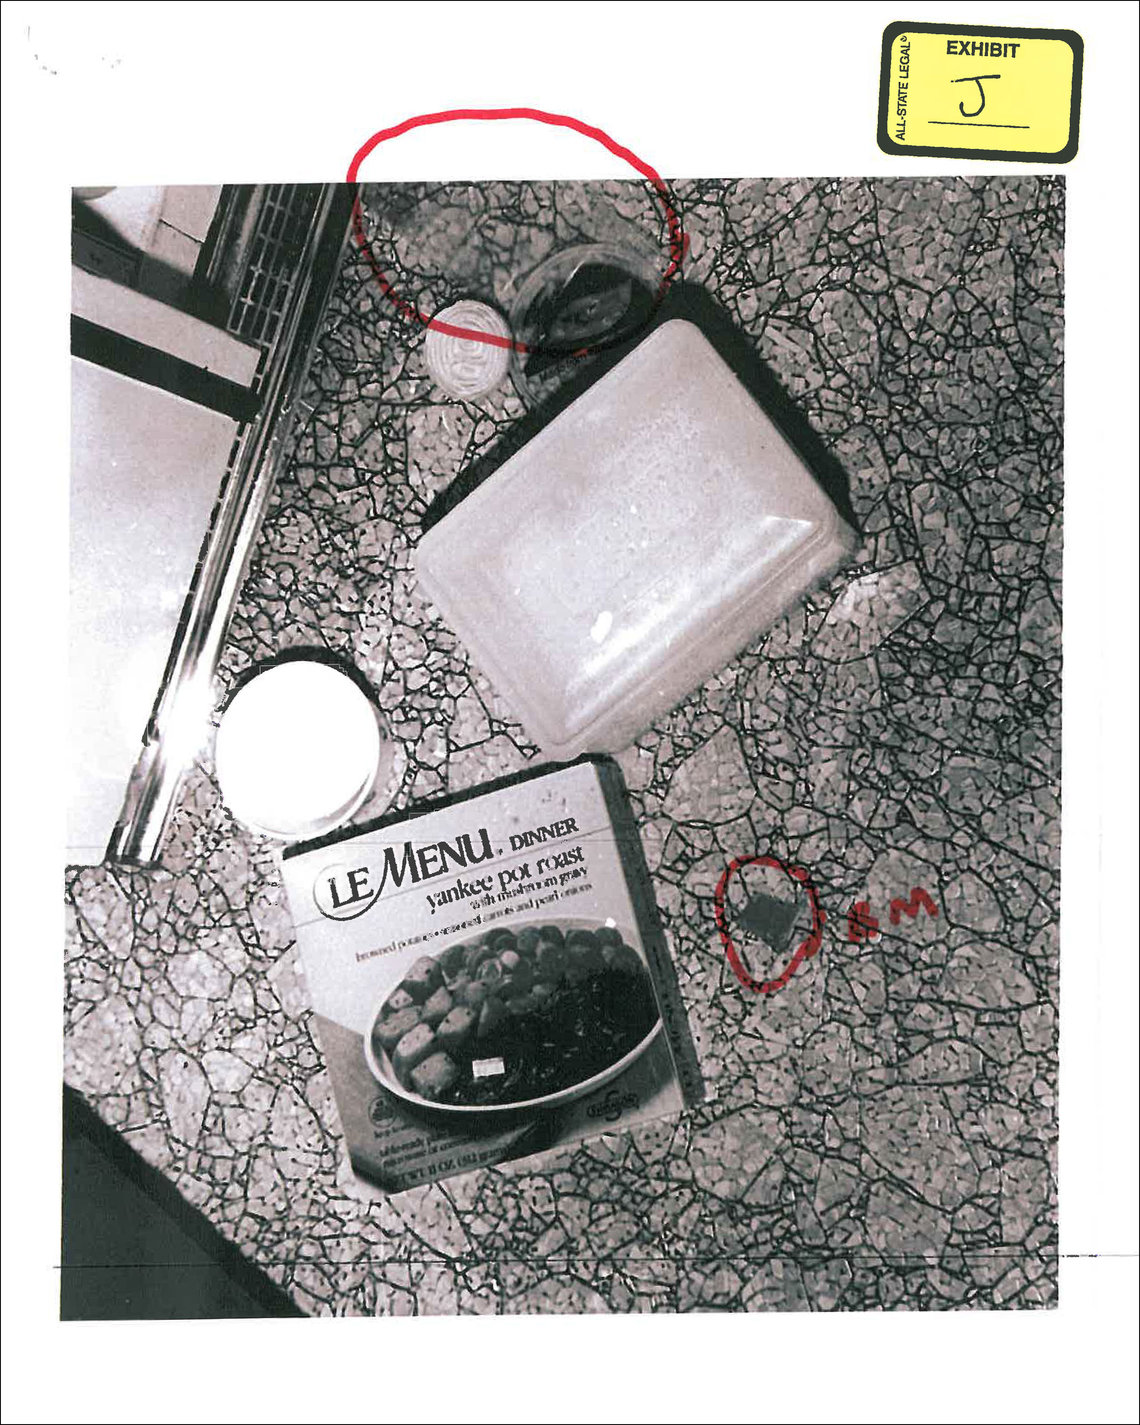 An evidence photo of the food discovered on the floor of Knoernschild's kitchen. At top, circled in red, is the clear cheese wrapper.